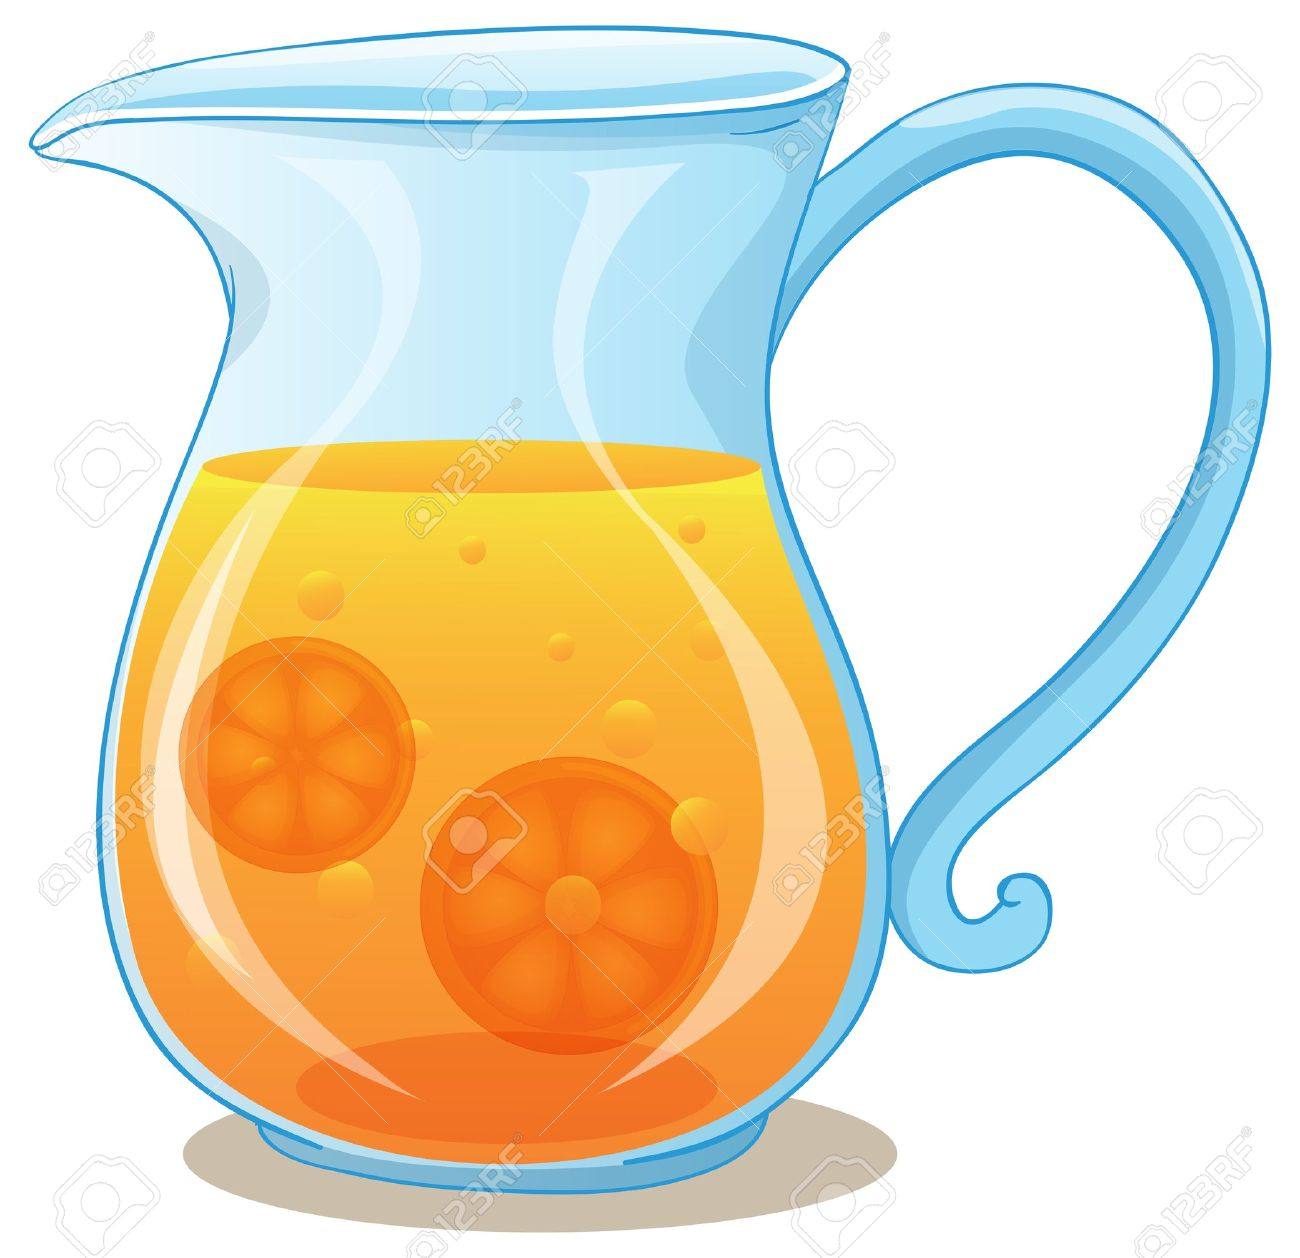 pitcher of orange juice images  stock pictures royalty free  - pitcher of orange juice illustration of a pitcher of orange juice on awhite background